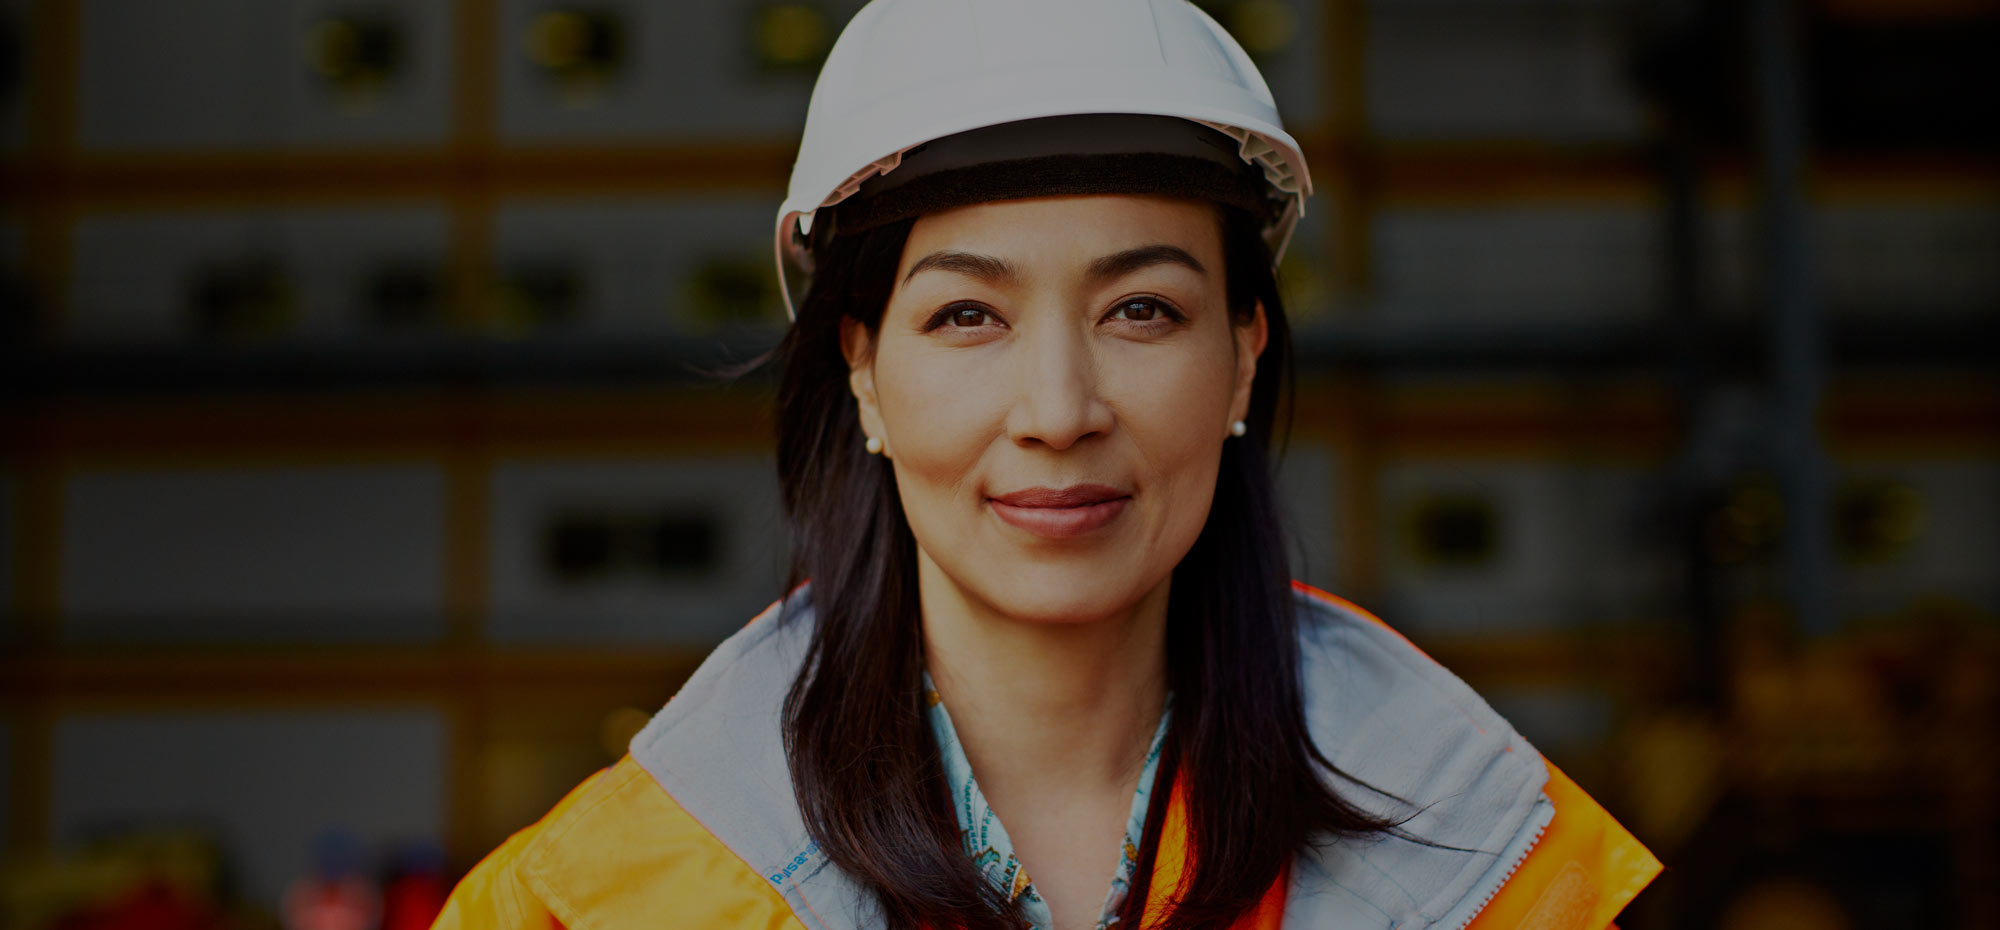 What advice would you give your younger self? SMEC's women in engineering reflect on their career journeys